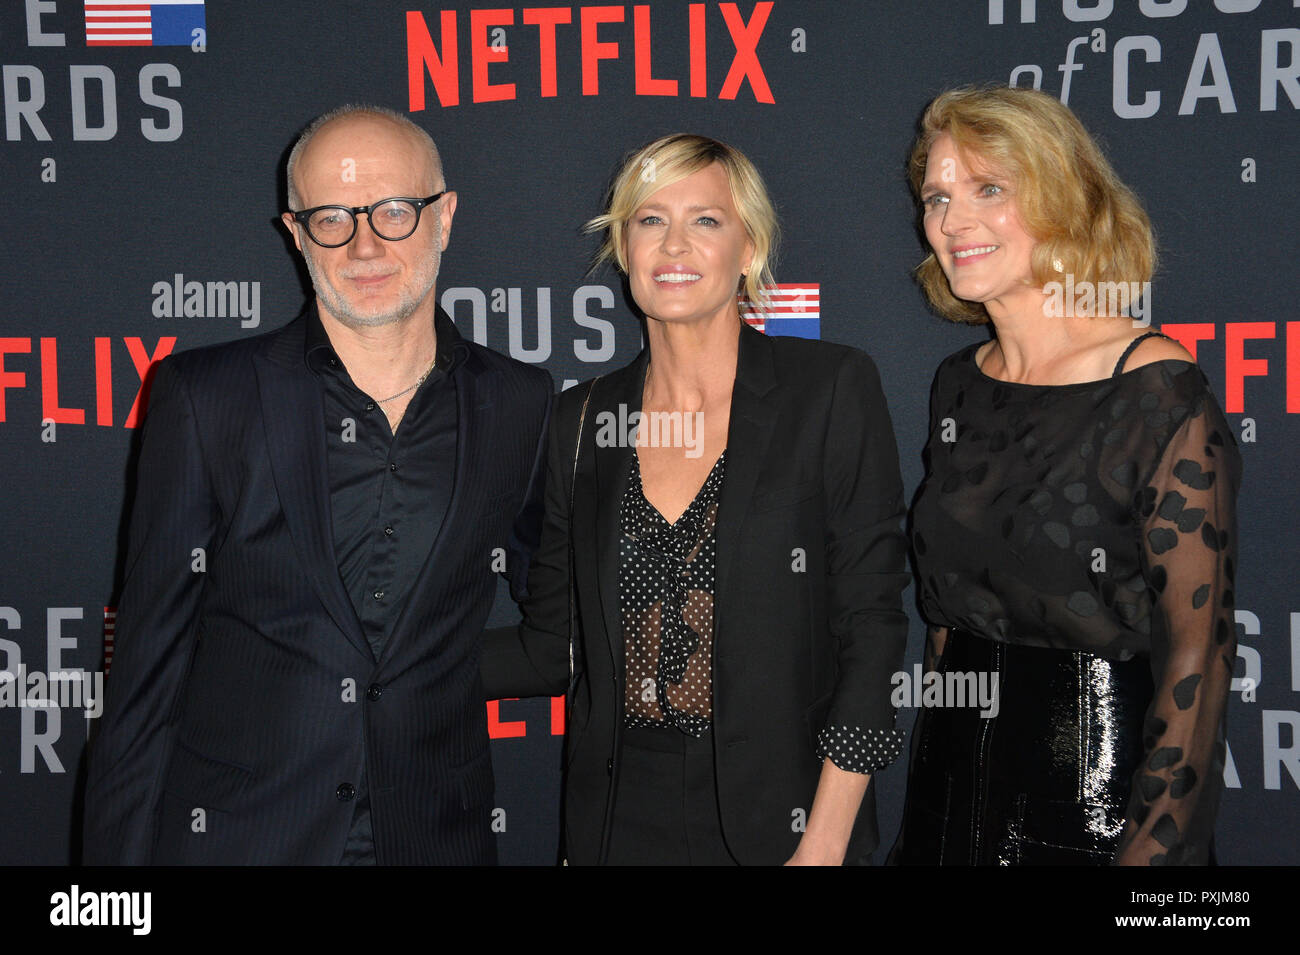 Los Angeles, California, USA. 22nd October, 2018. Frank Pugliese, Robin Wright & Melissa James Gibson at the season 6 premiere for 'House of Cards' at the Directors Guild Theatre. Picture: Paul Smith/Featureflash Credit: Paul Smith/Alamy Live News - Stock Image